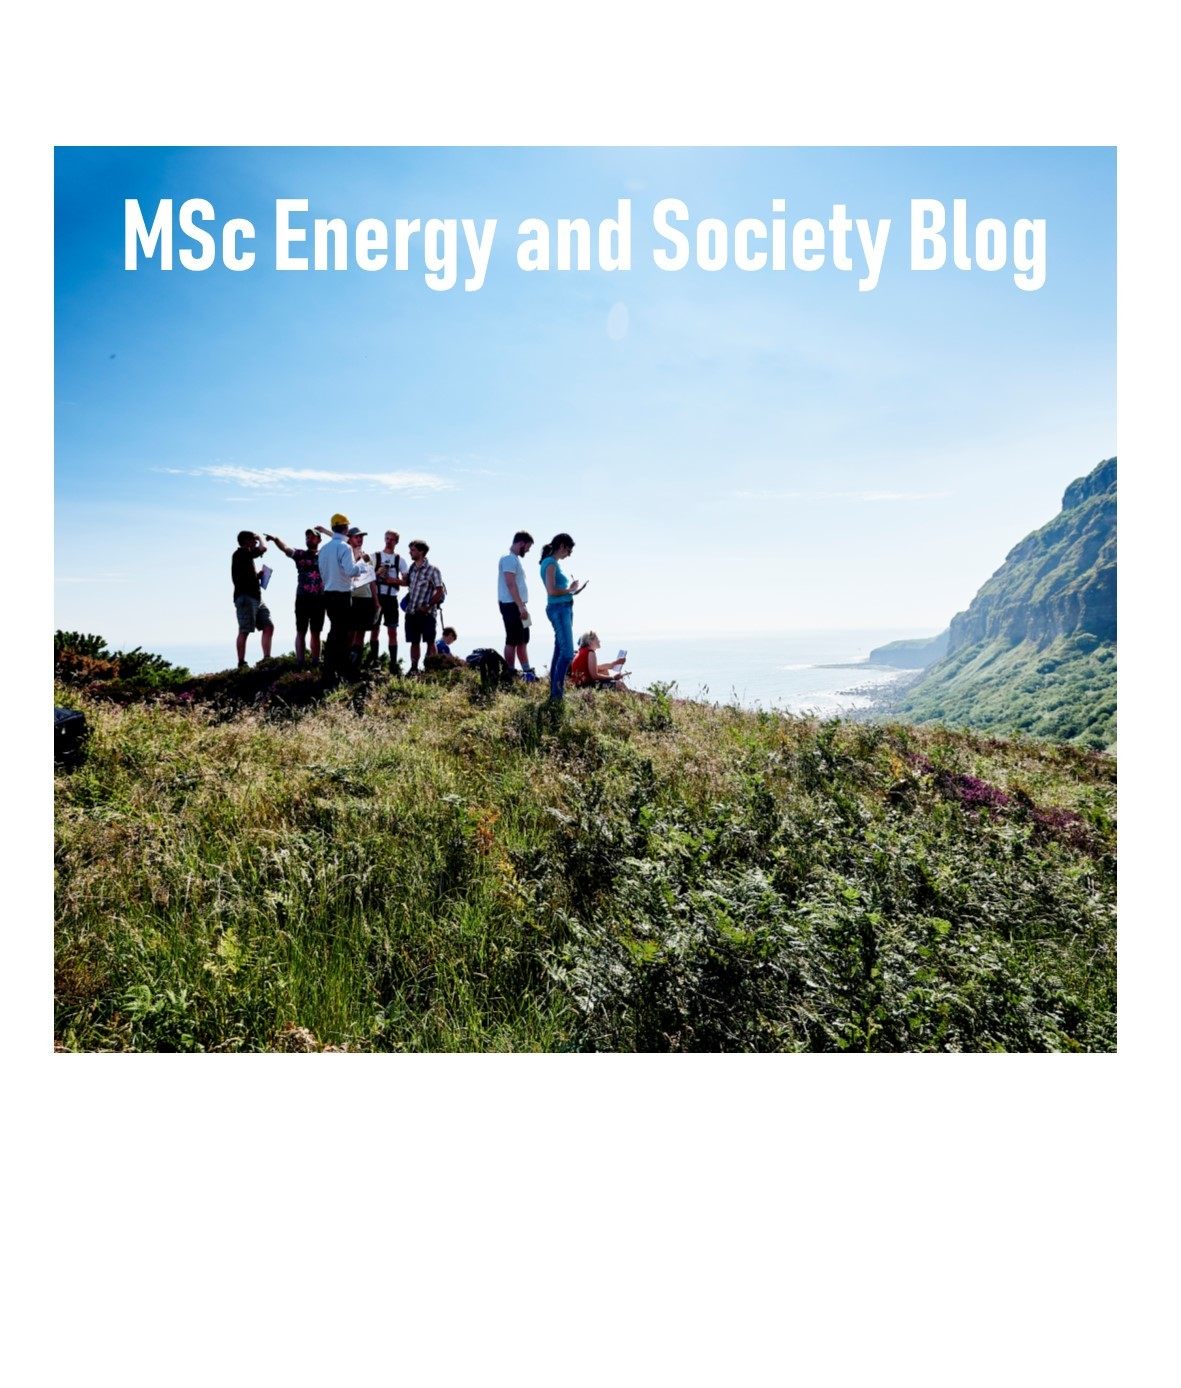 Welcome to the MSc Energy and Society blog. Students from around the world are participating in the programme, to understand what the world's current energy challenges are, how to understand them from different perspectives and how to address them.